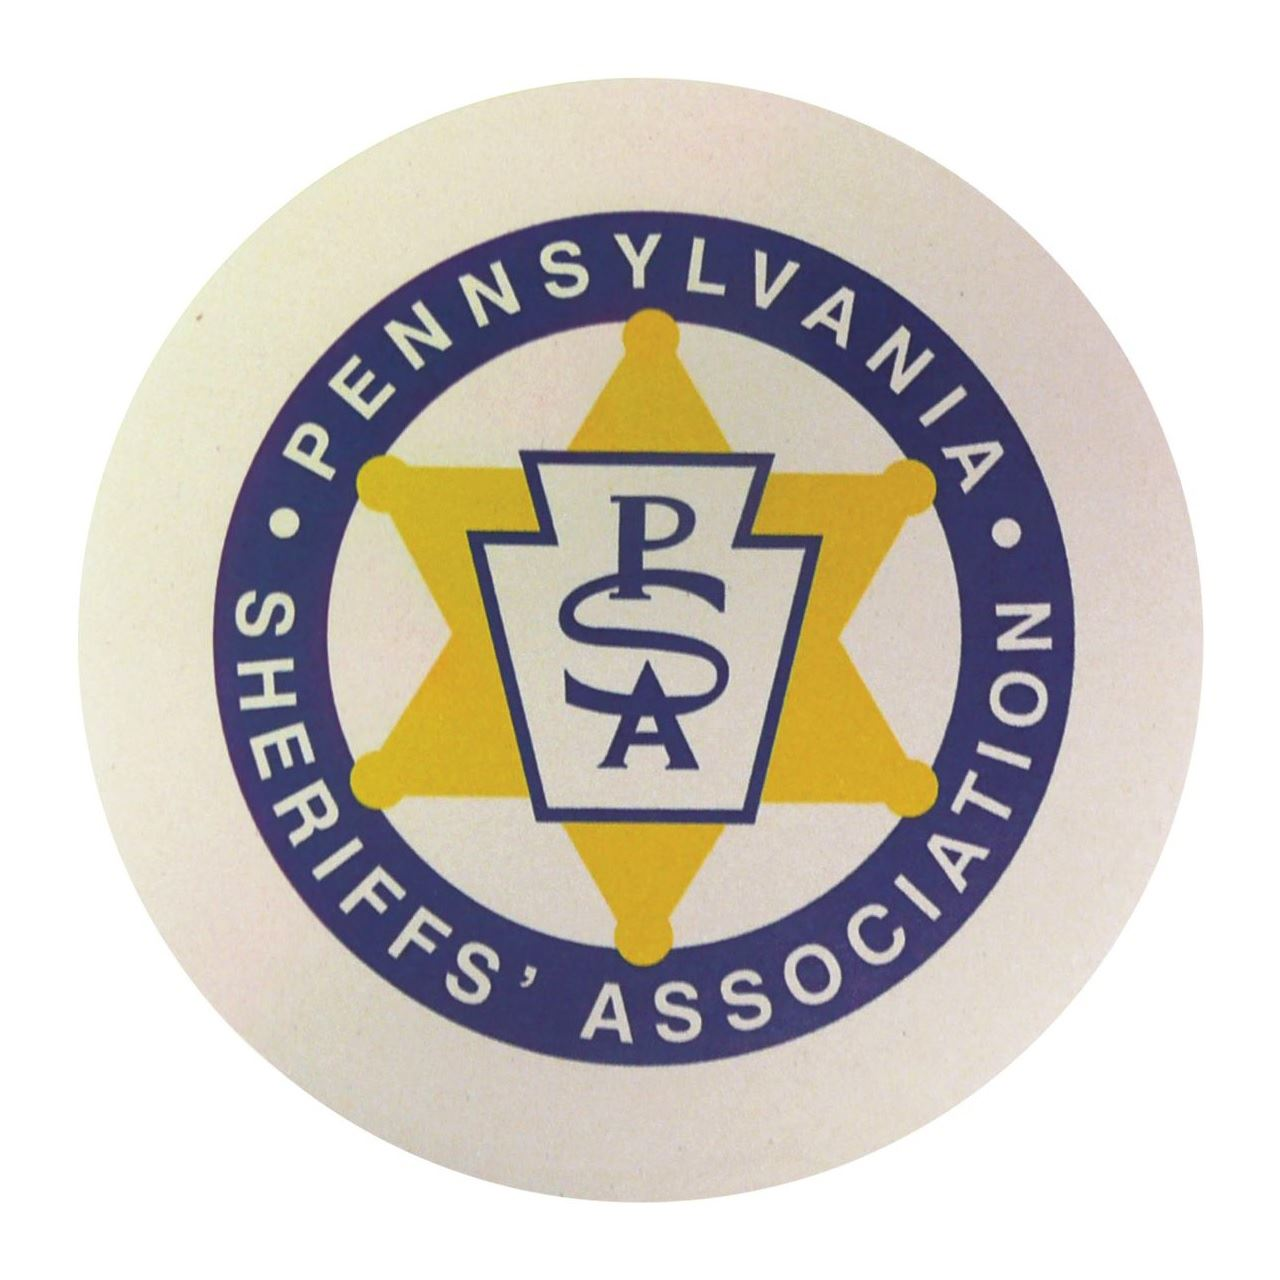 The logo for the PA Sheriff's Association.